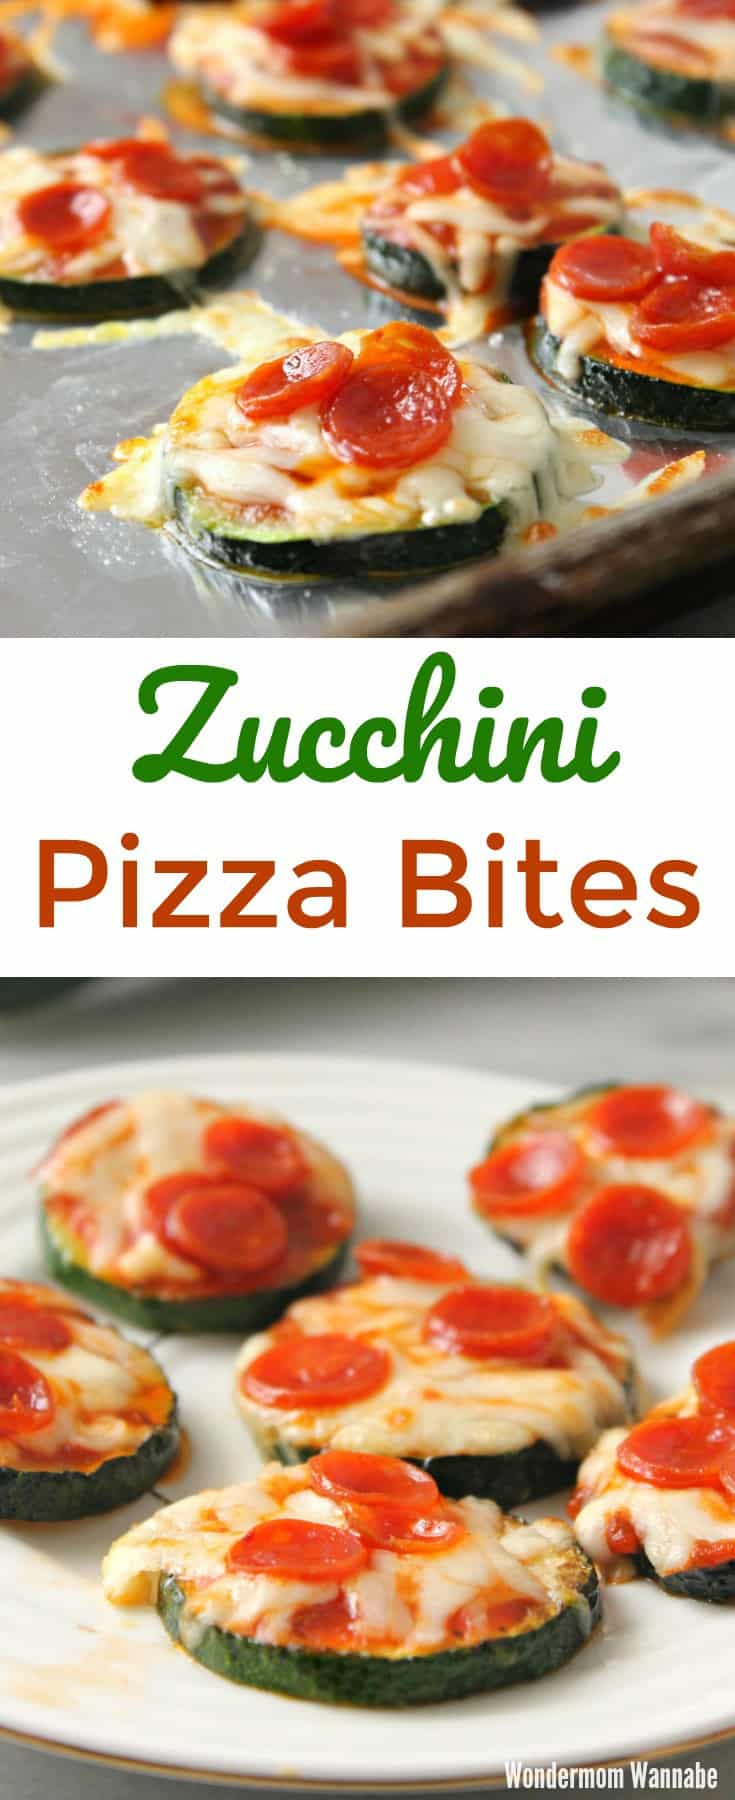 These zucchini pizza bites are so yummy and incredibly easy to make! Way healthier than pizza rolls too! #easyappetizers #snacks